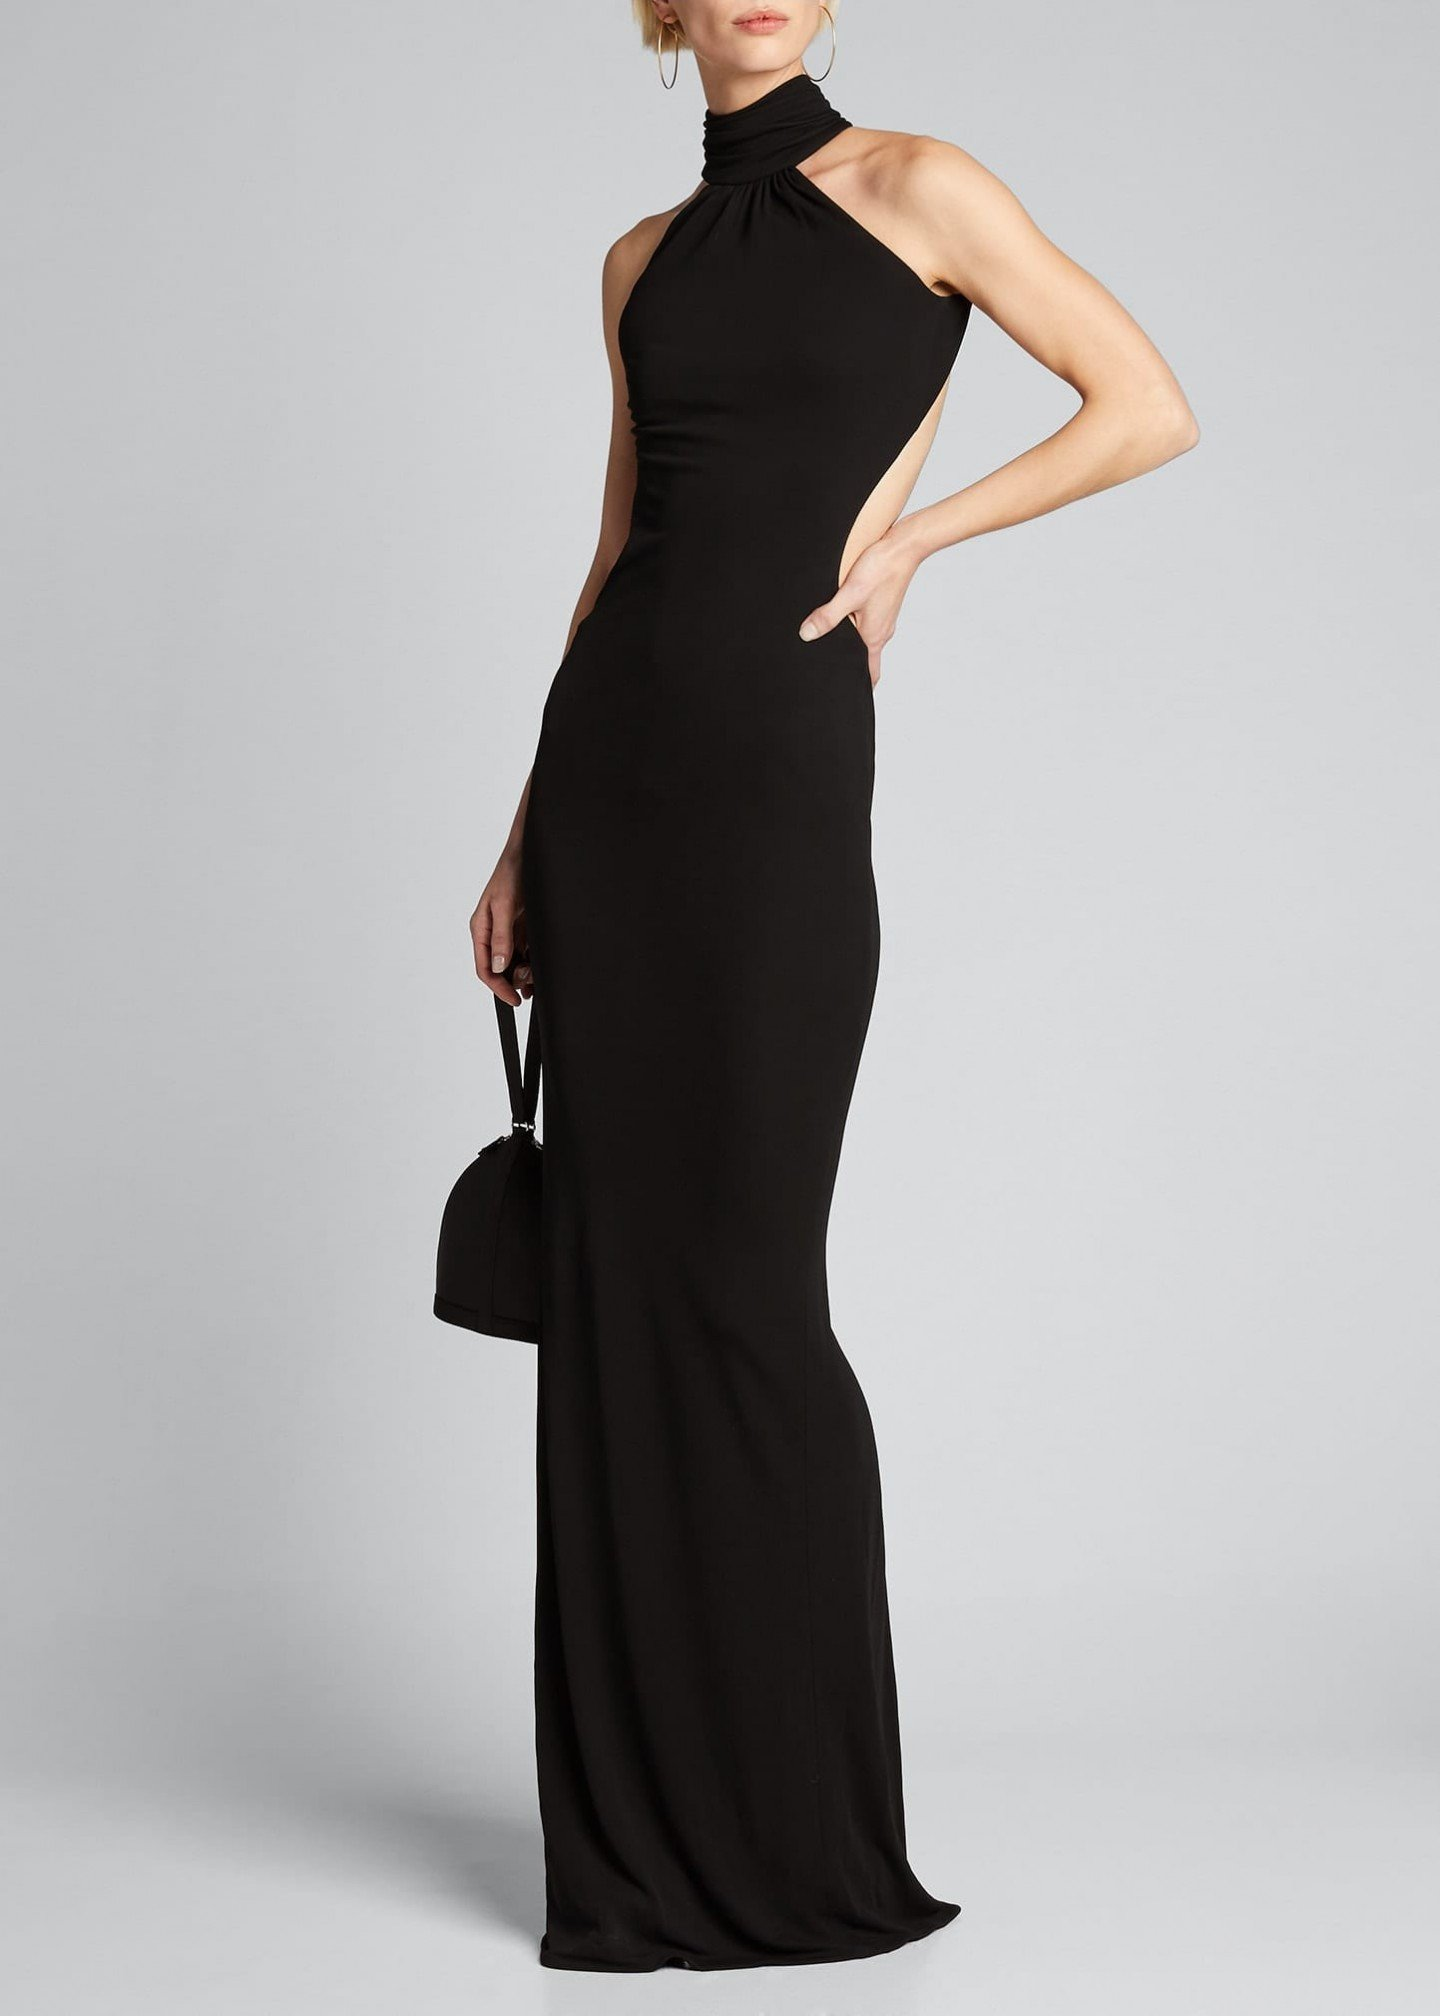 BRANDON MAXWELL High-Neck Backless Gown